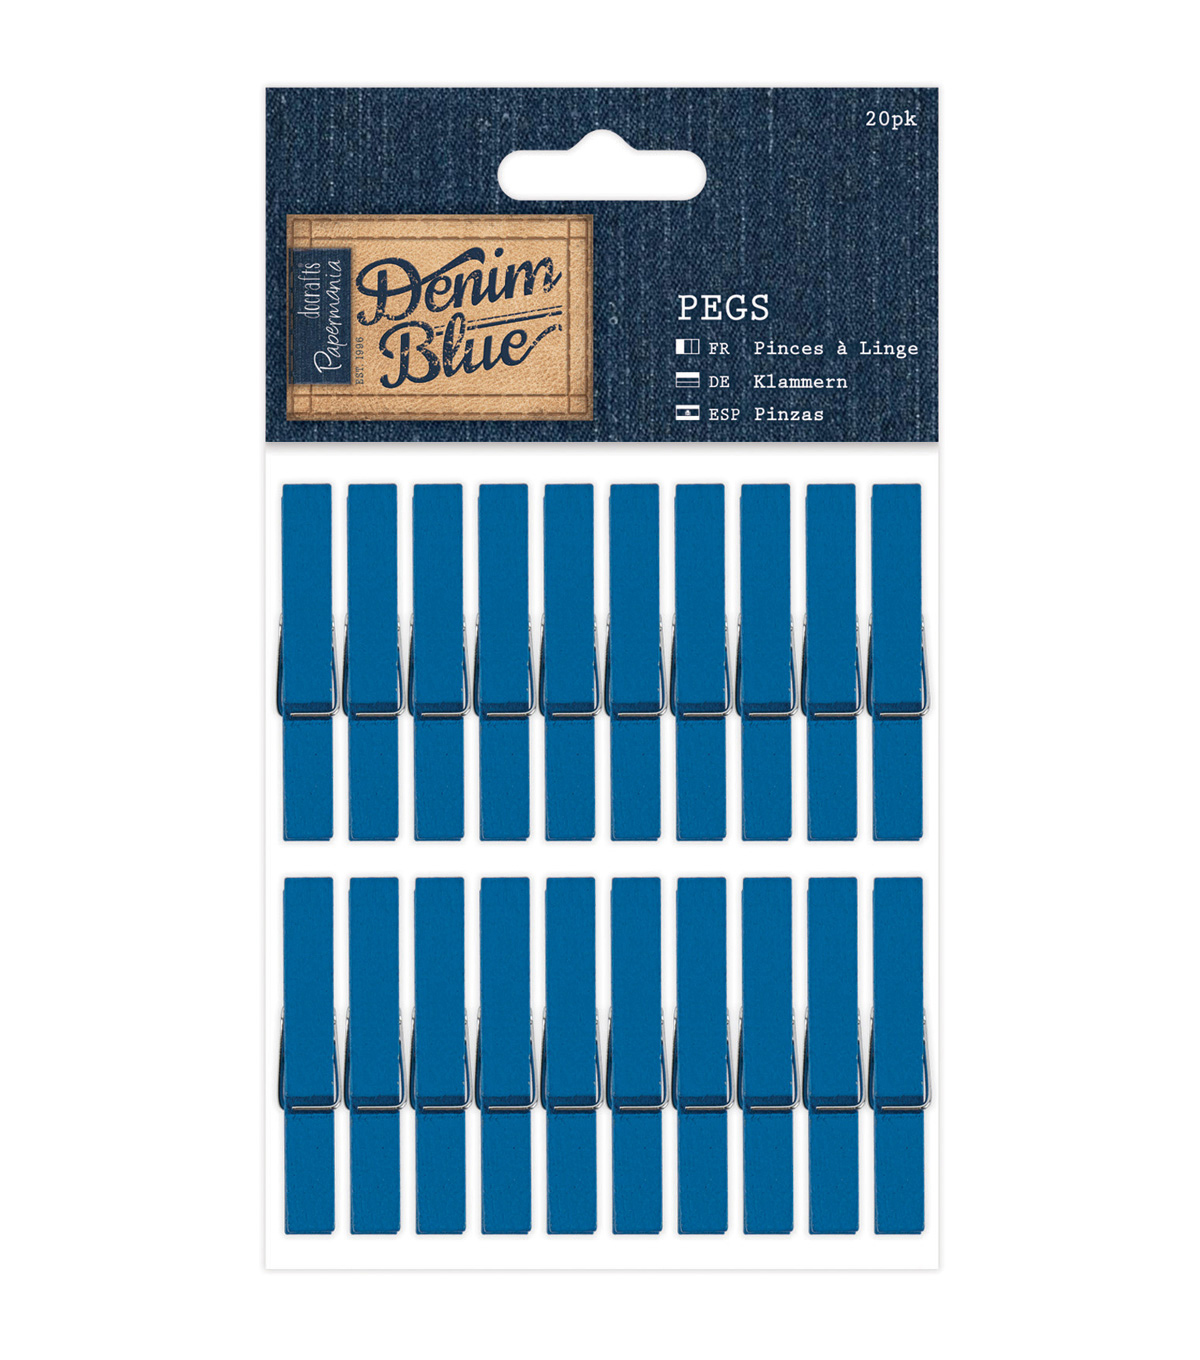 Papermania Denim Blue 20ct Pegs